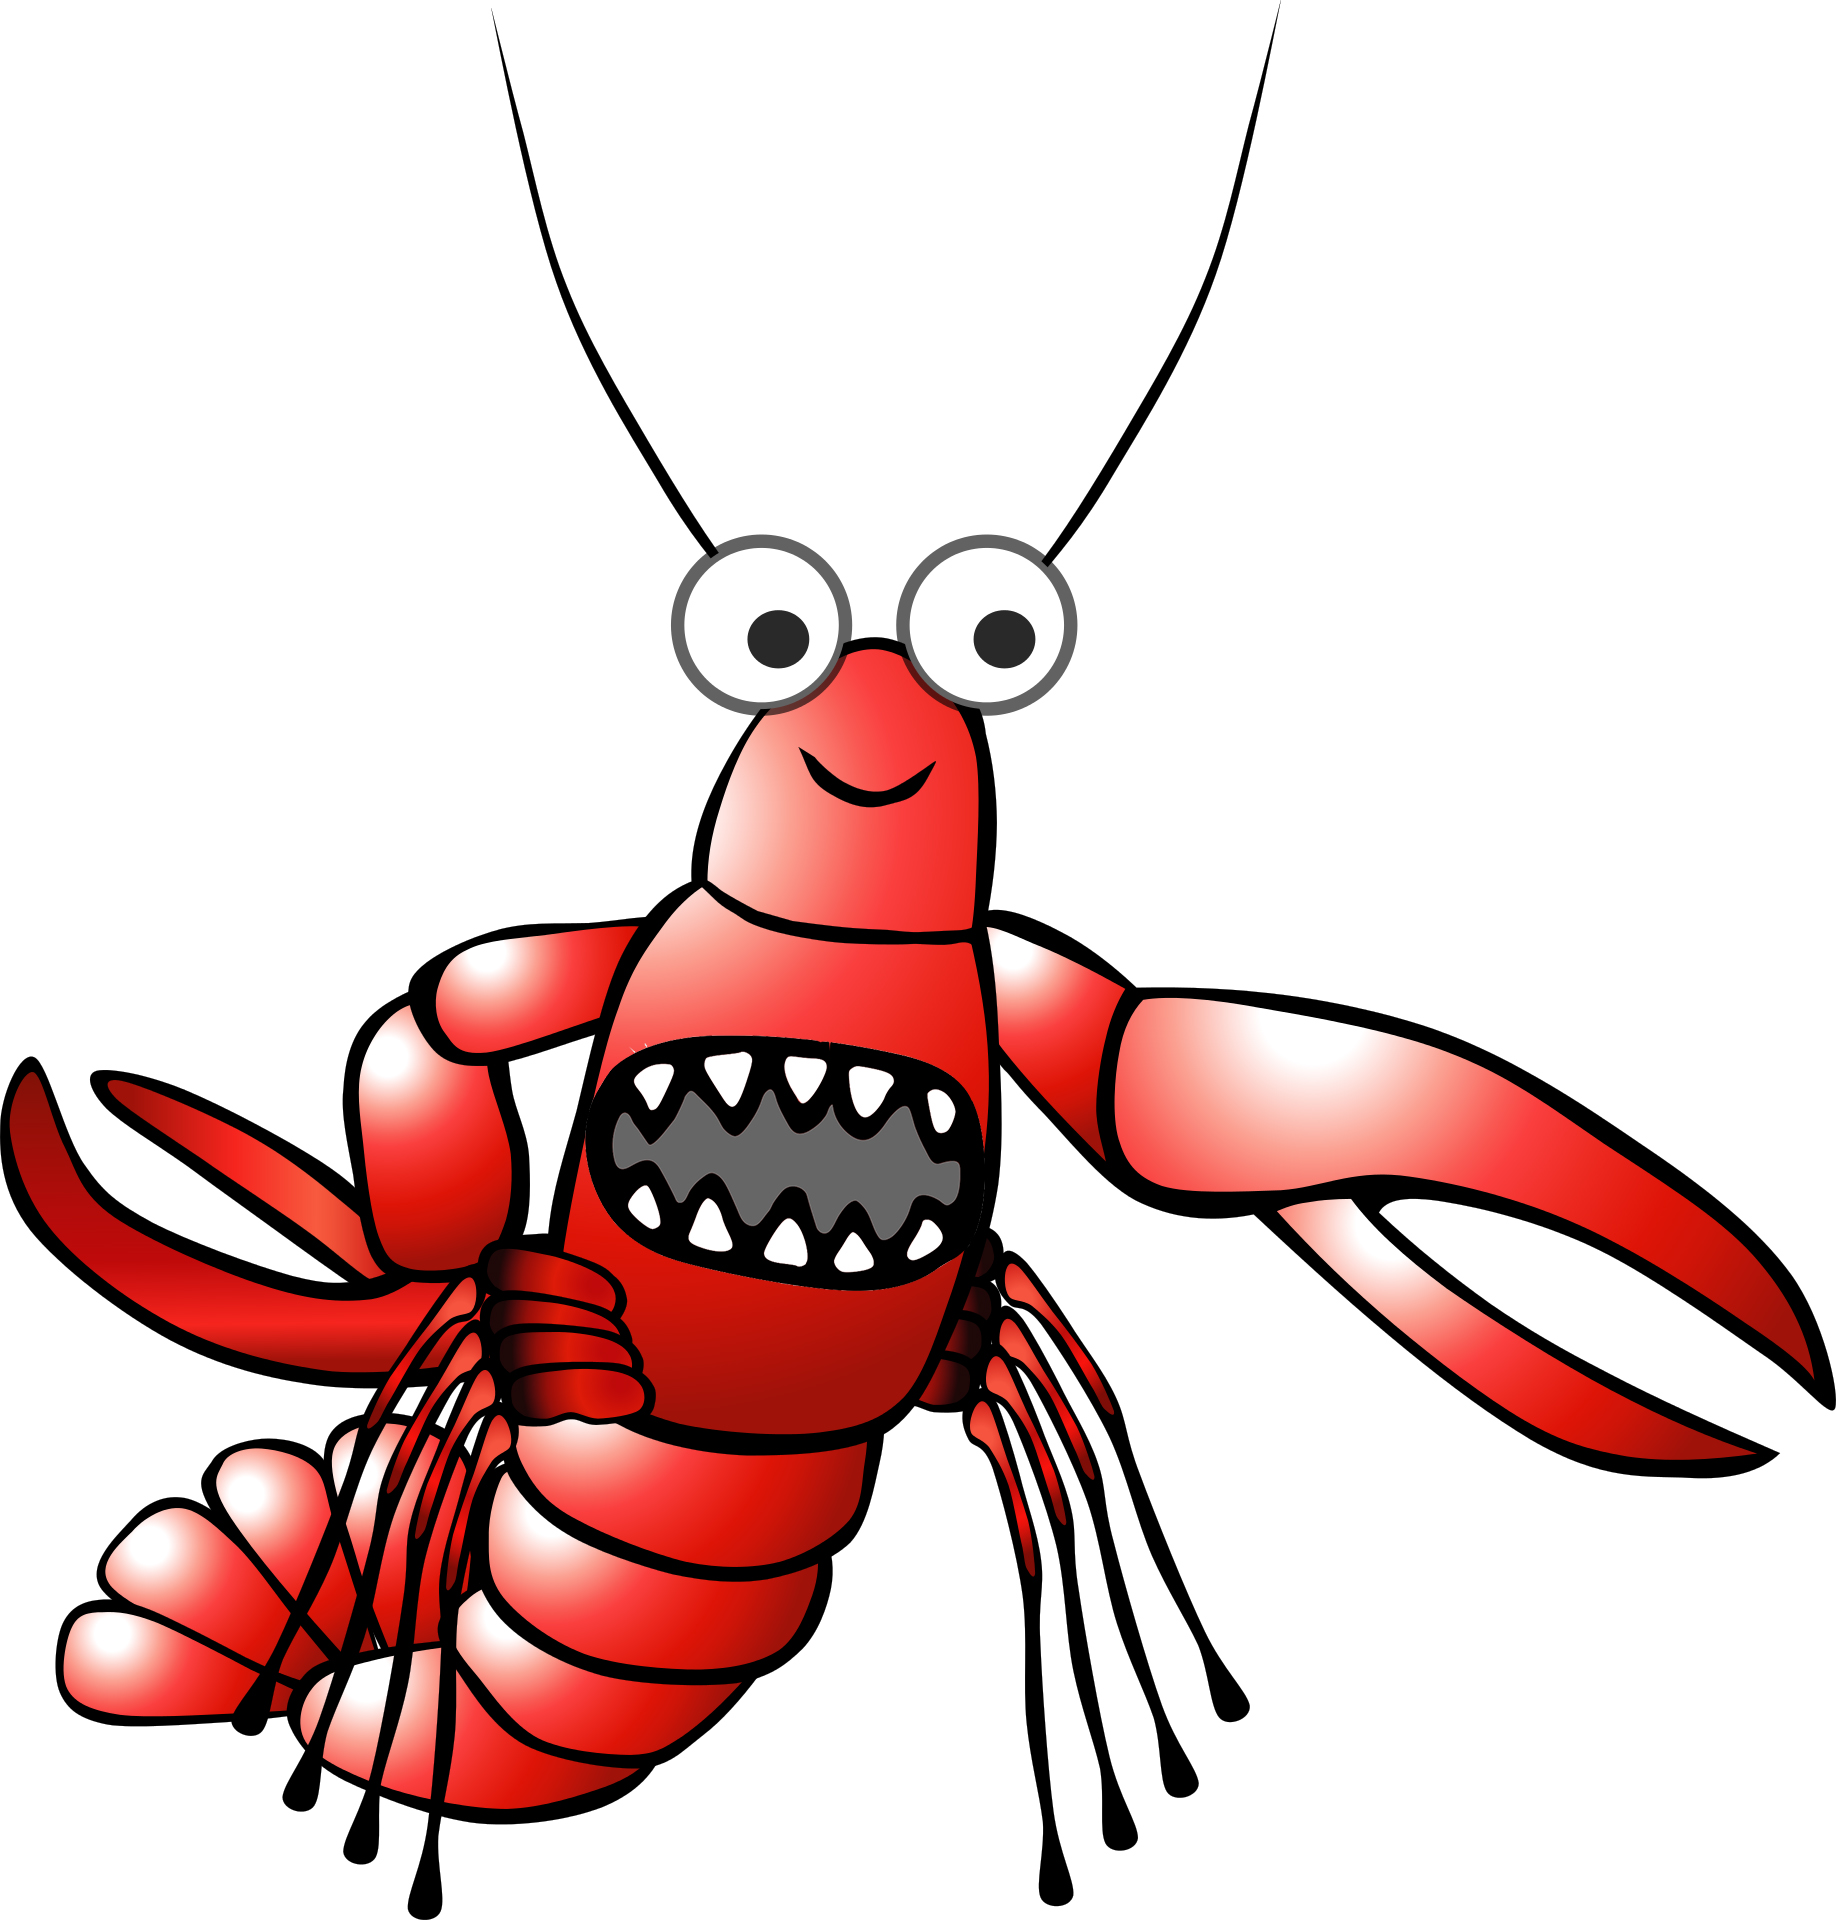 A lobster's teeth are in its stomach.